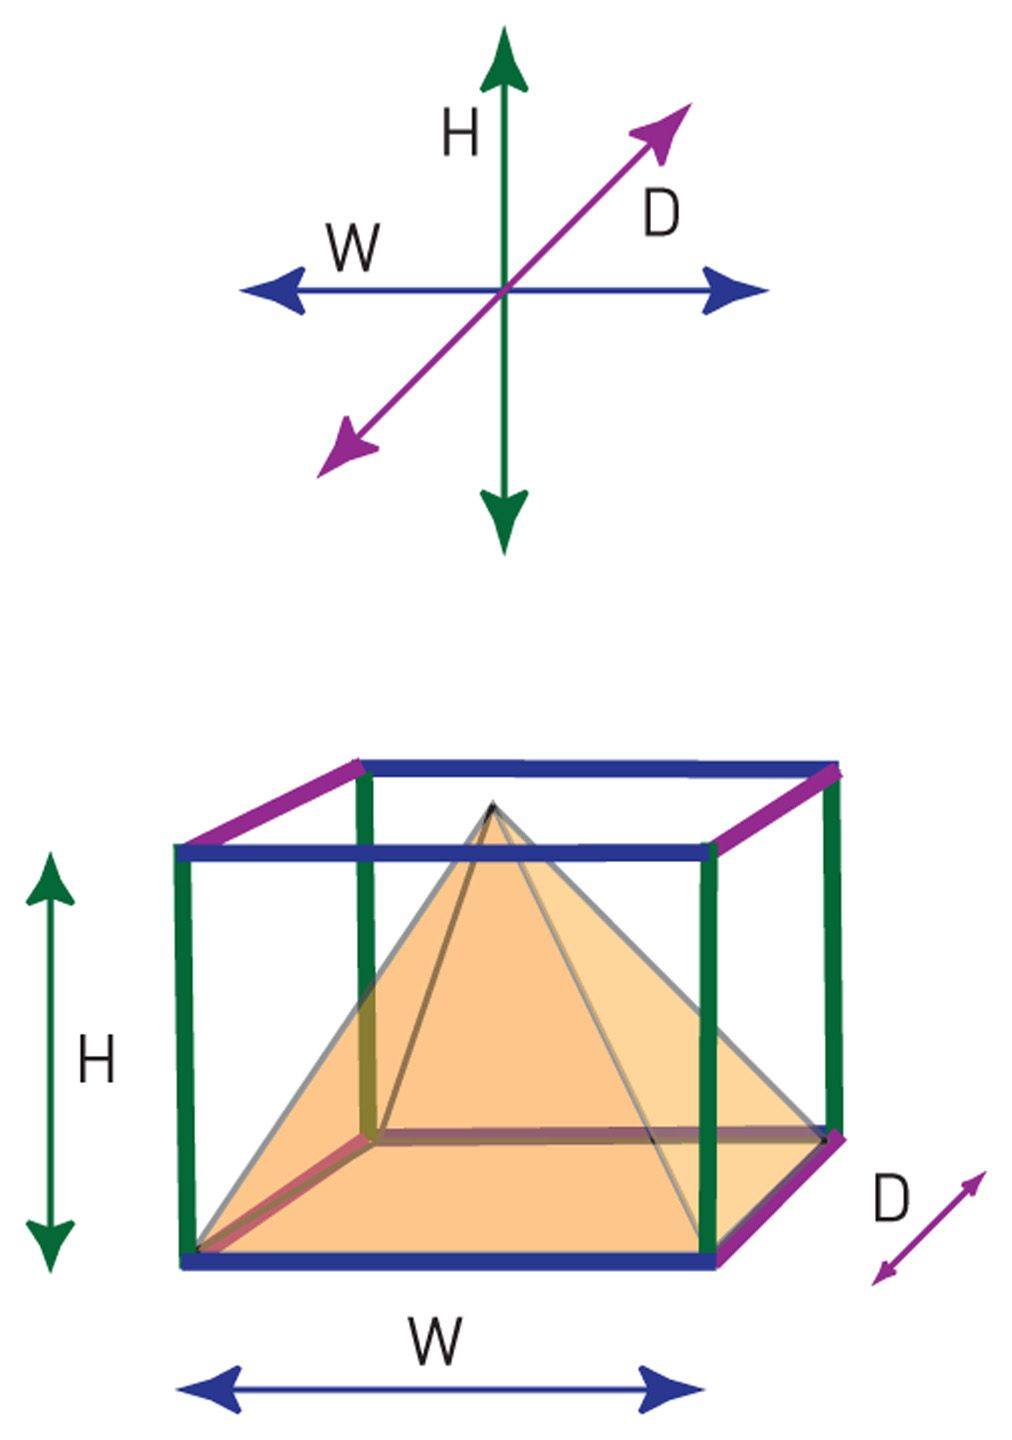 1 28 Three Dimensions Height Width And Depth Intro To